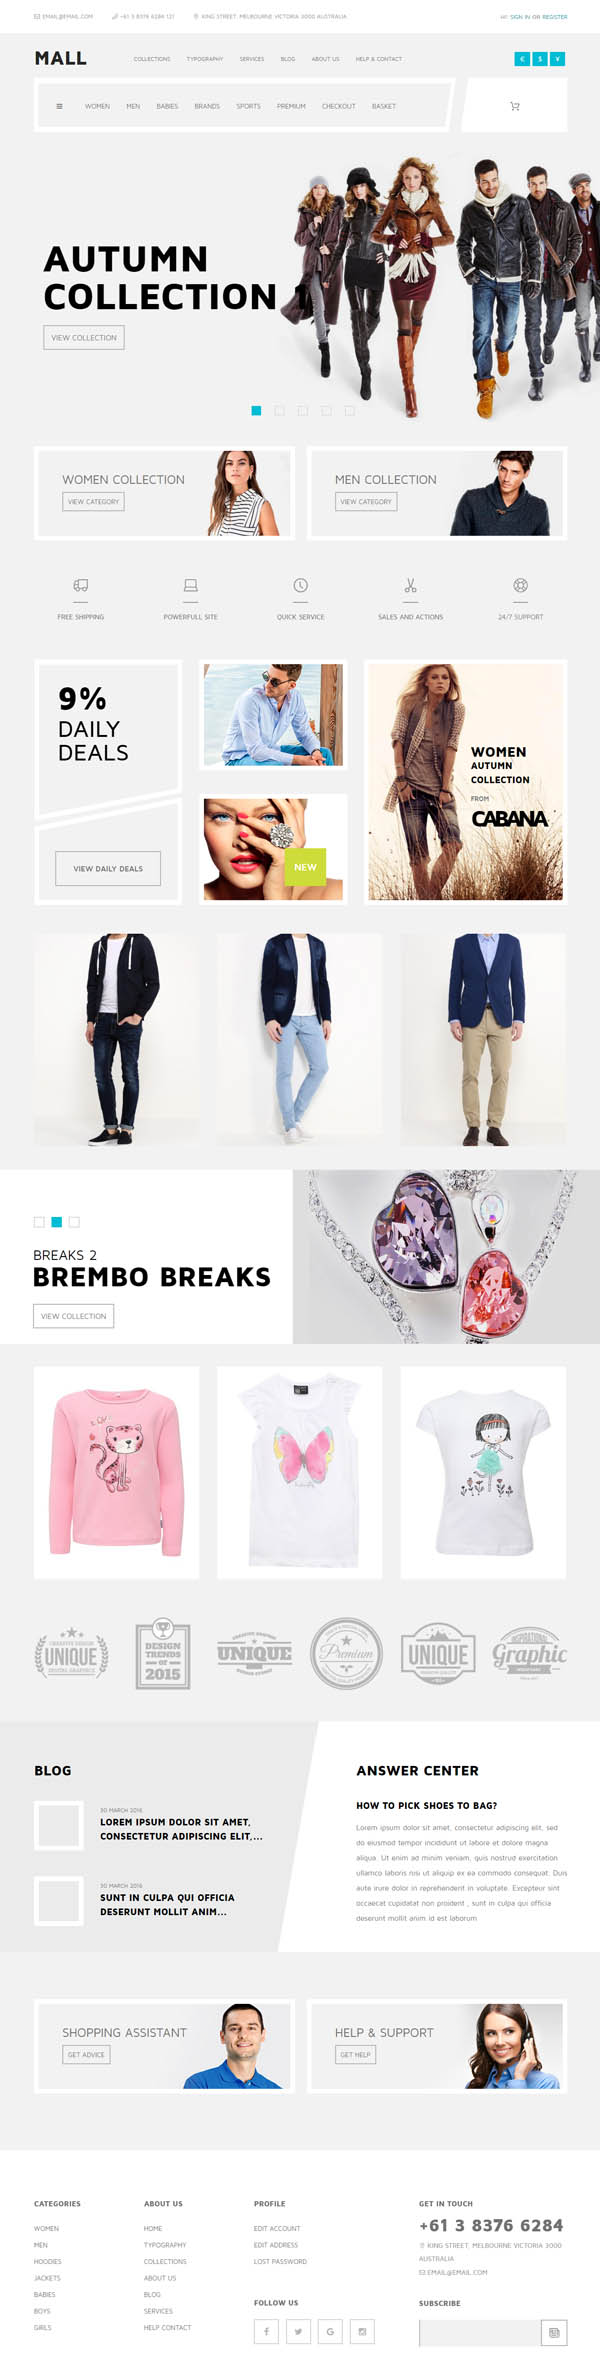 Mall - Multi-Purpose eCommerce Responsive WordPress Theme